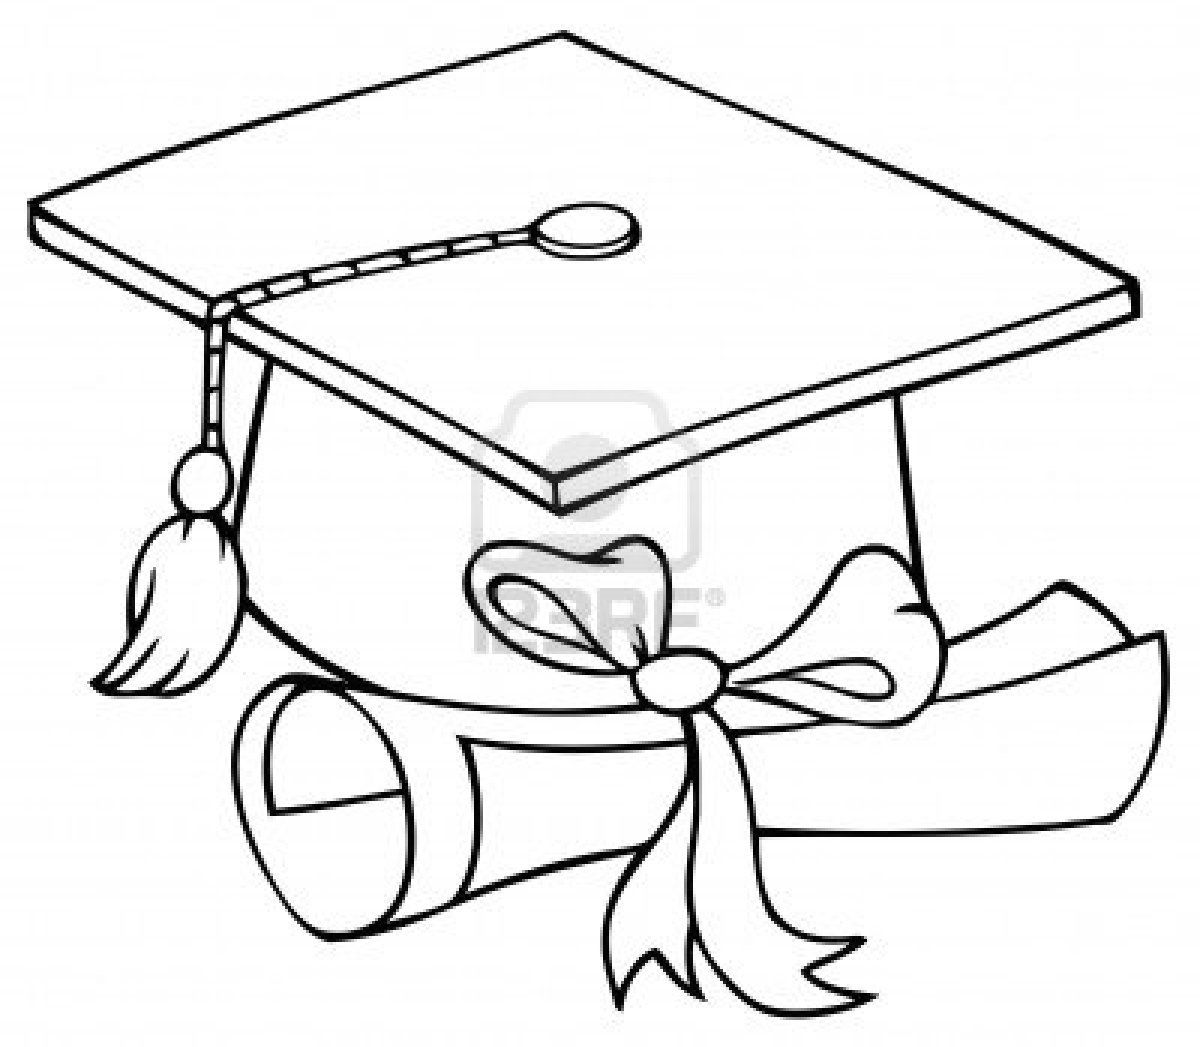 Coloring pages for kindergarten graduation - Graduation Cap Coloring Page Graduation Cap Coloring Page Coloring Pages Pictures Imagixs